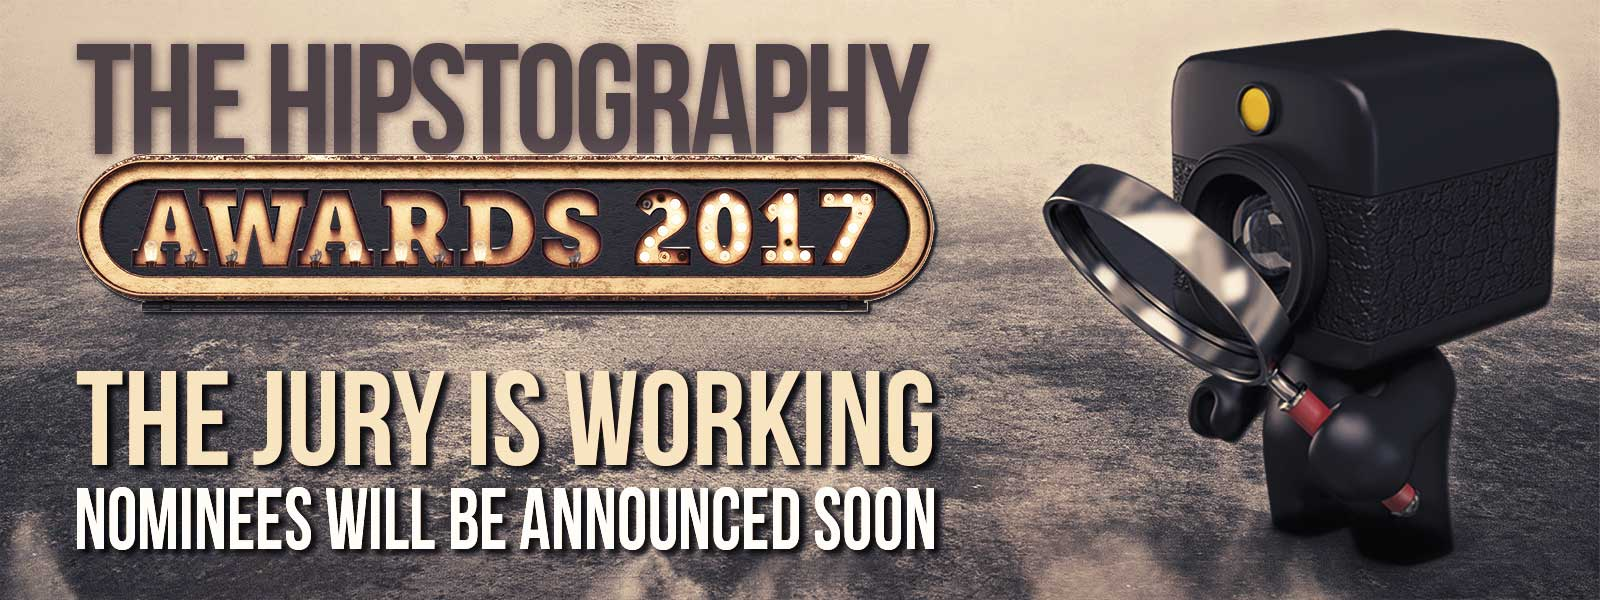 Awards-2017-Jury-working-banner